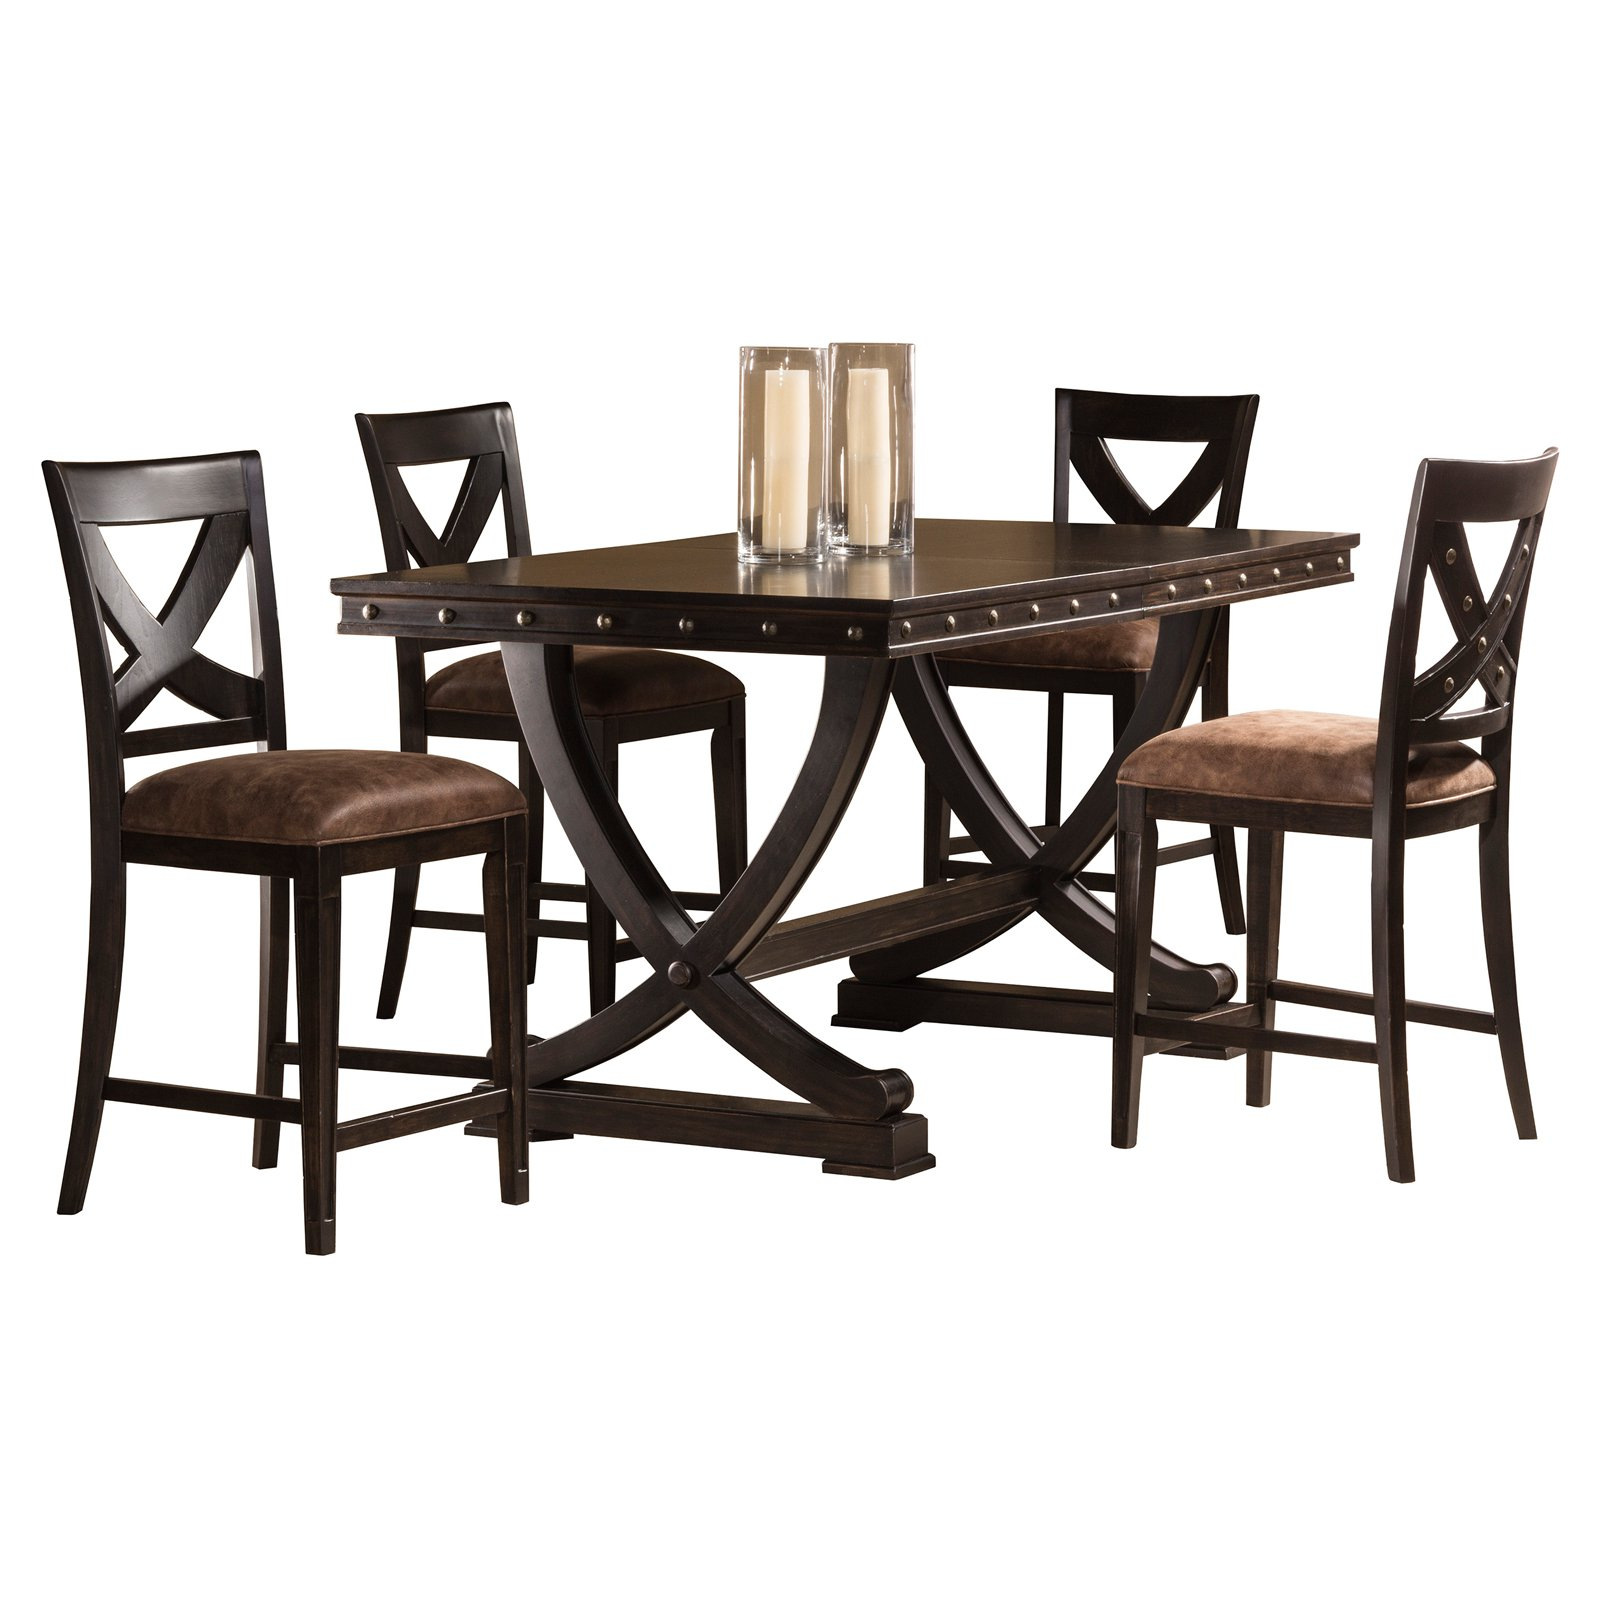 Hillsdale Santa Fe 5 Piece Counter Height Dining Set